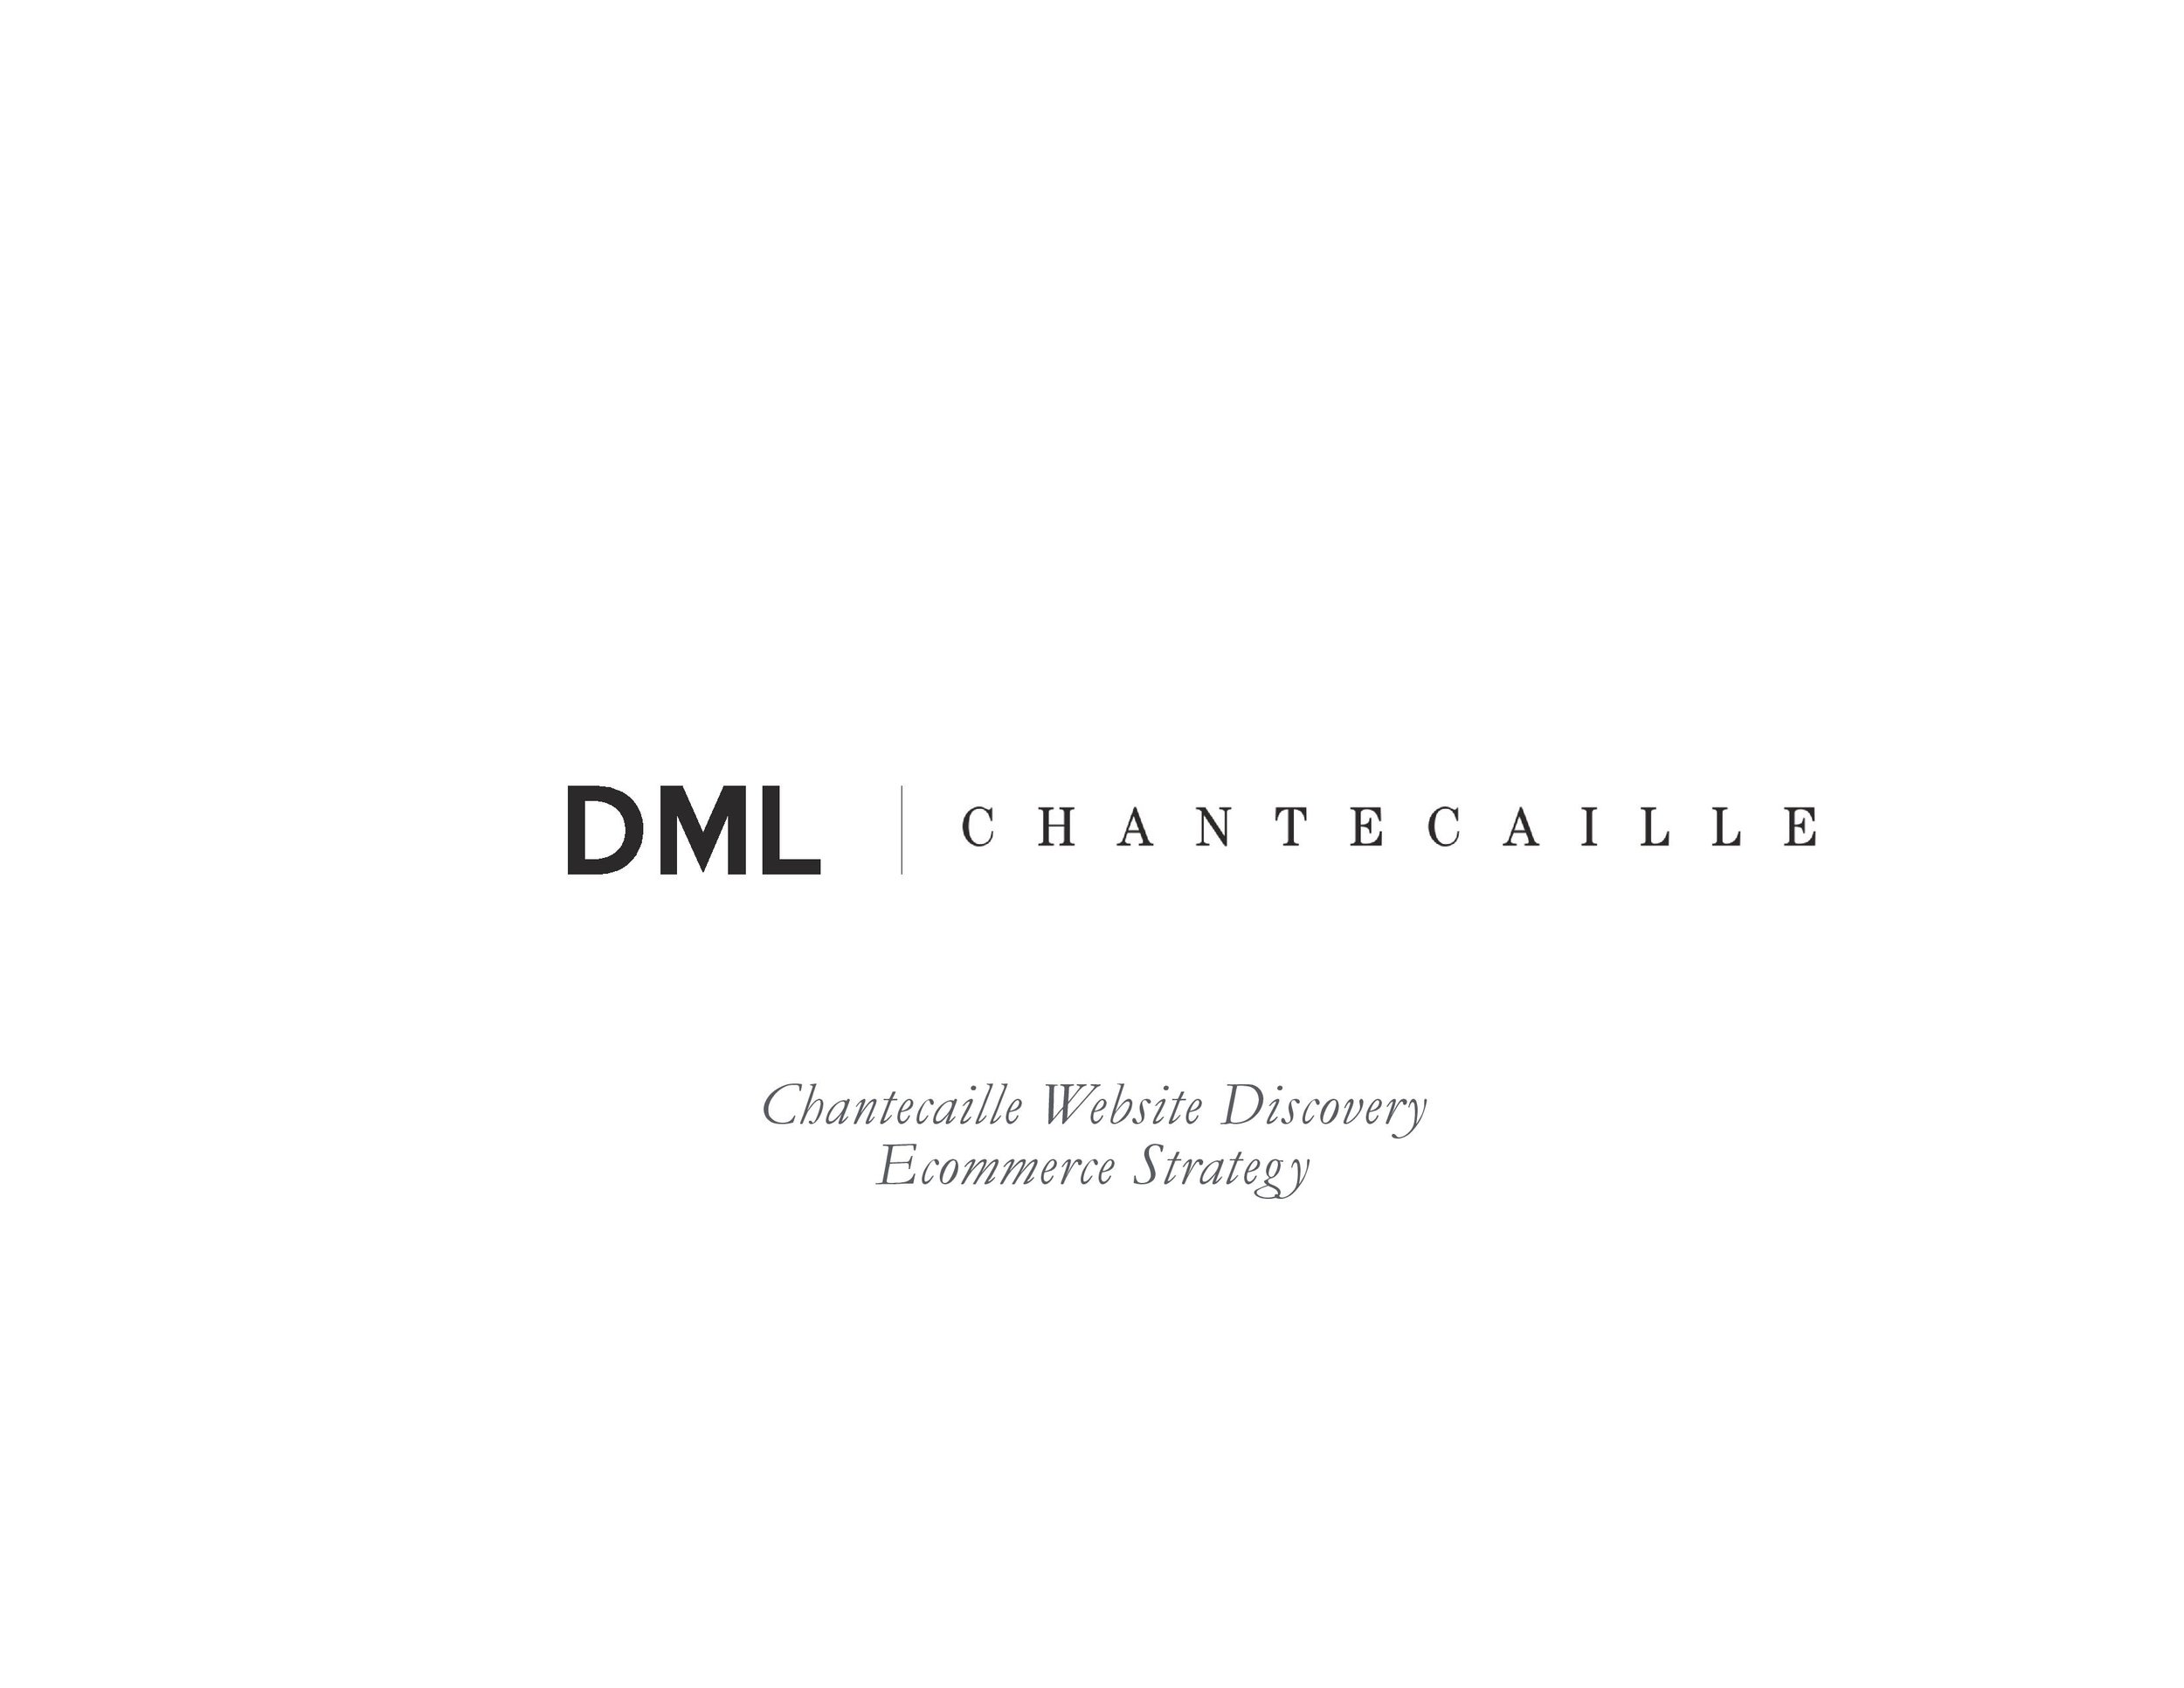 11_18_16 DML_Chantecaille-page-001.jpg